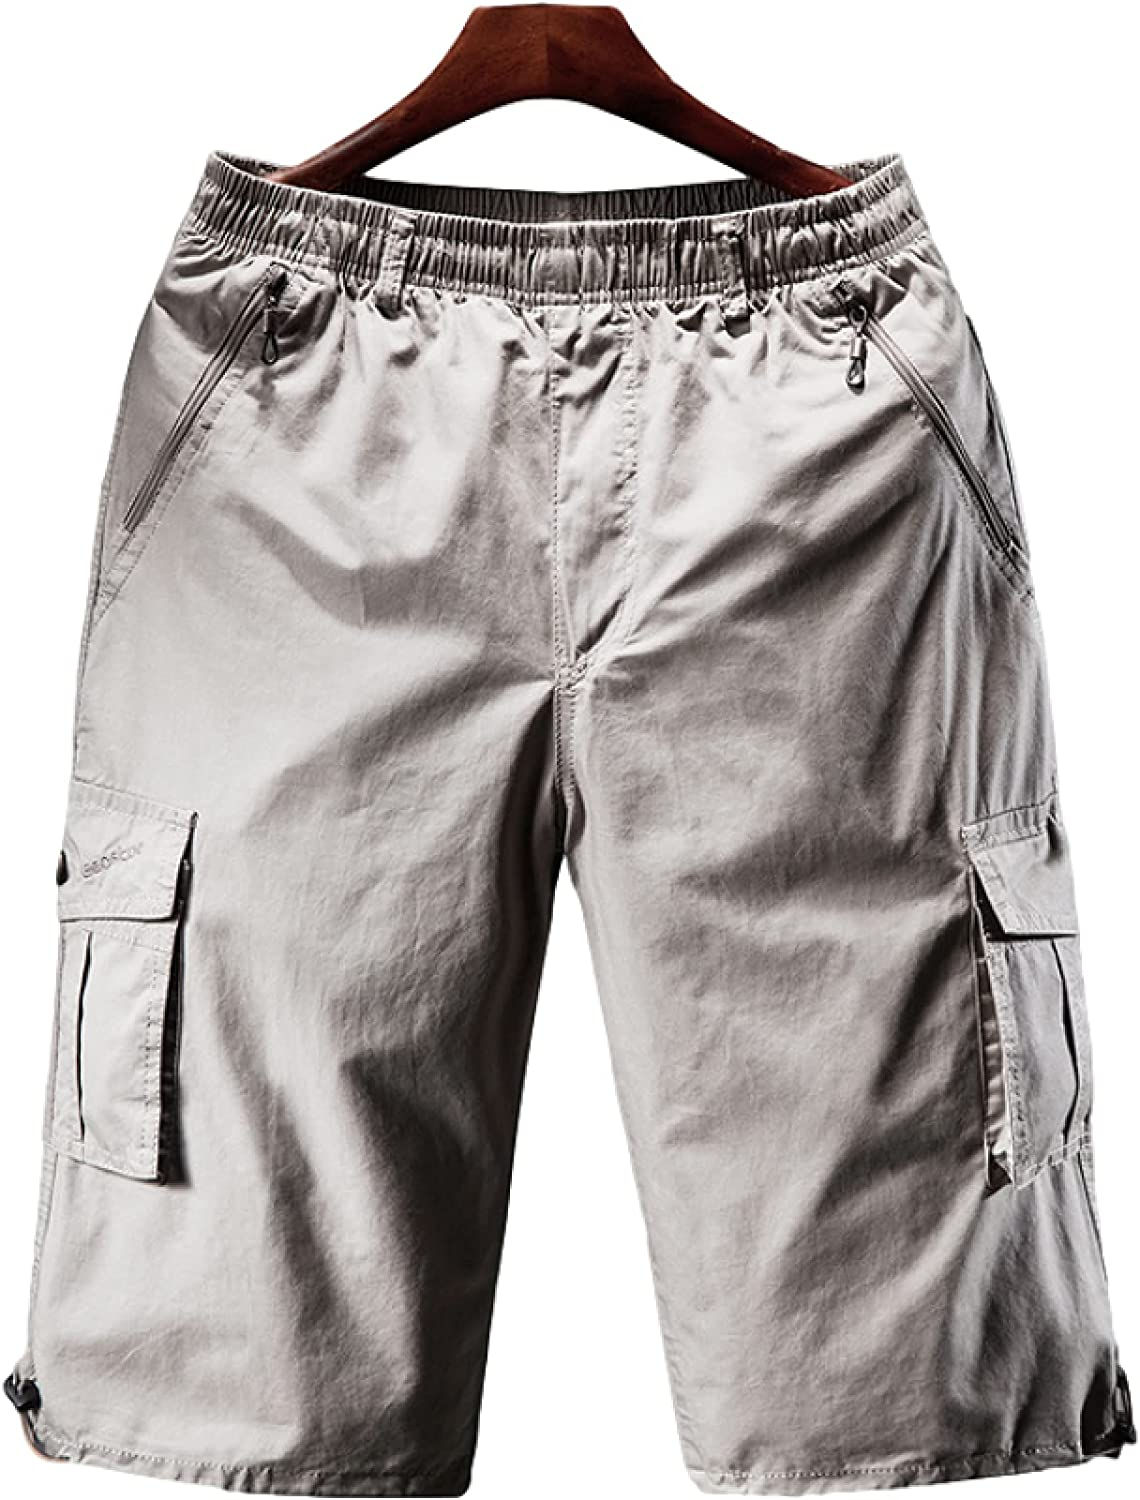 Men's Loose Large Size Shorts Casual Comfortable Elasticated Waist Outdoor